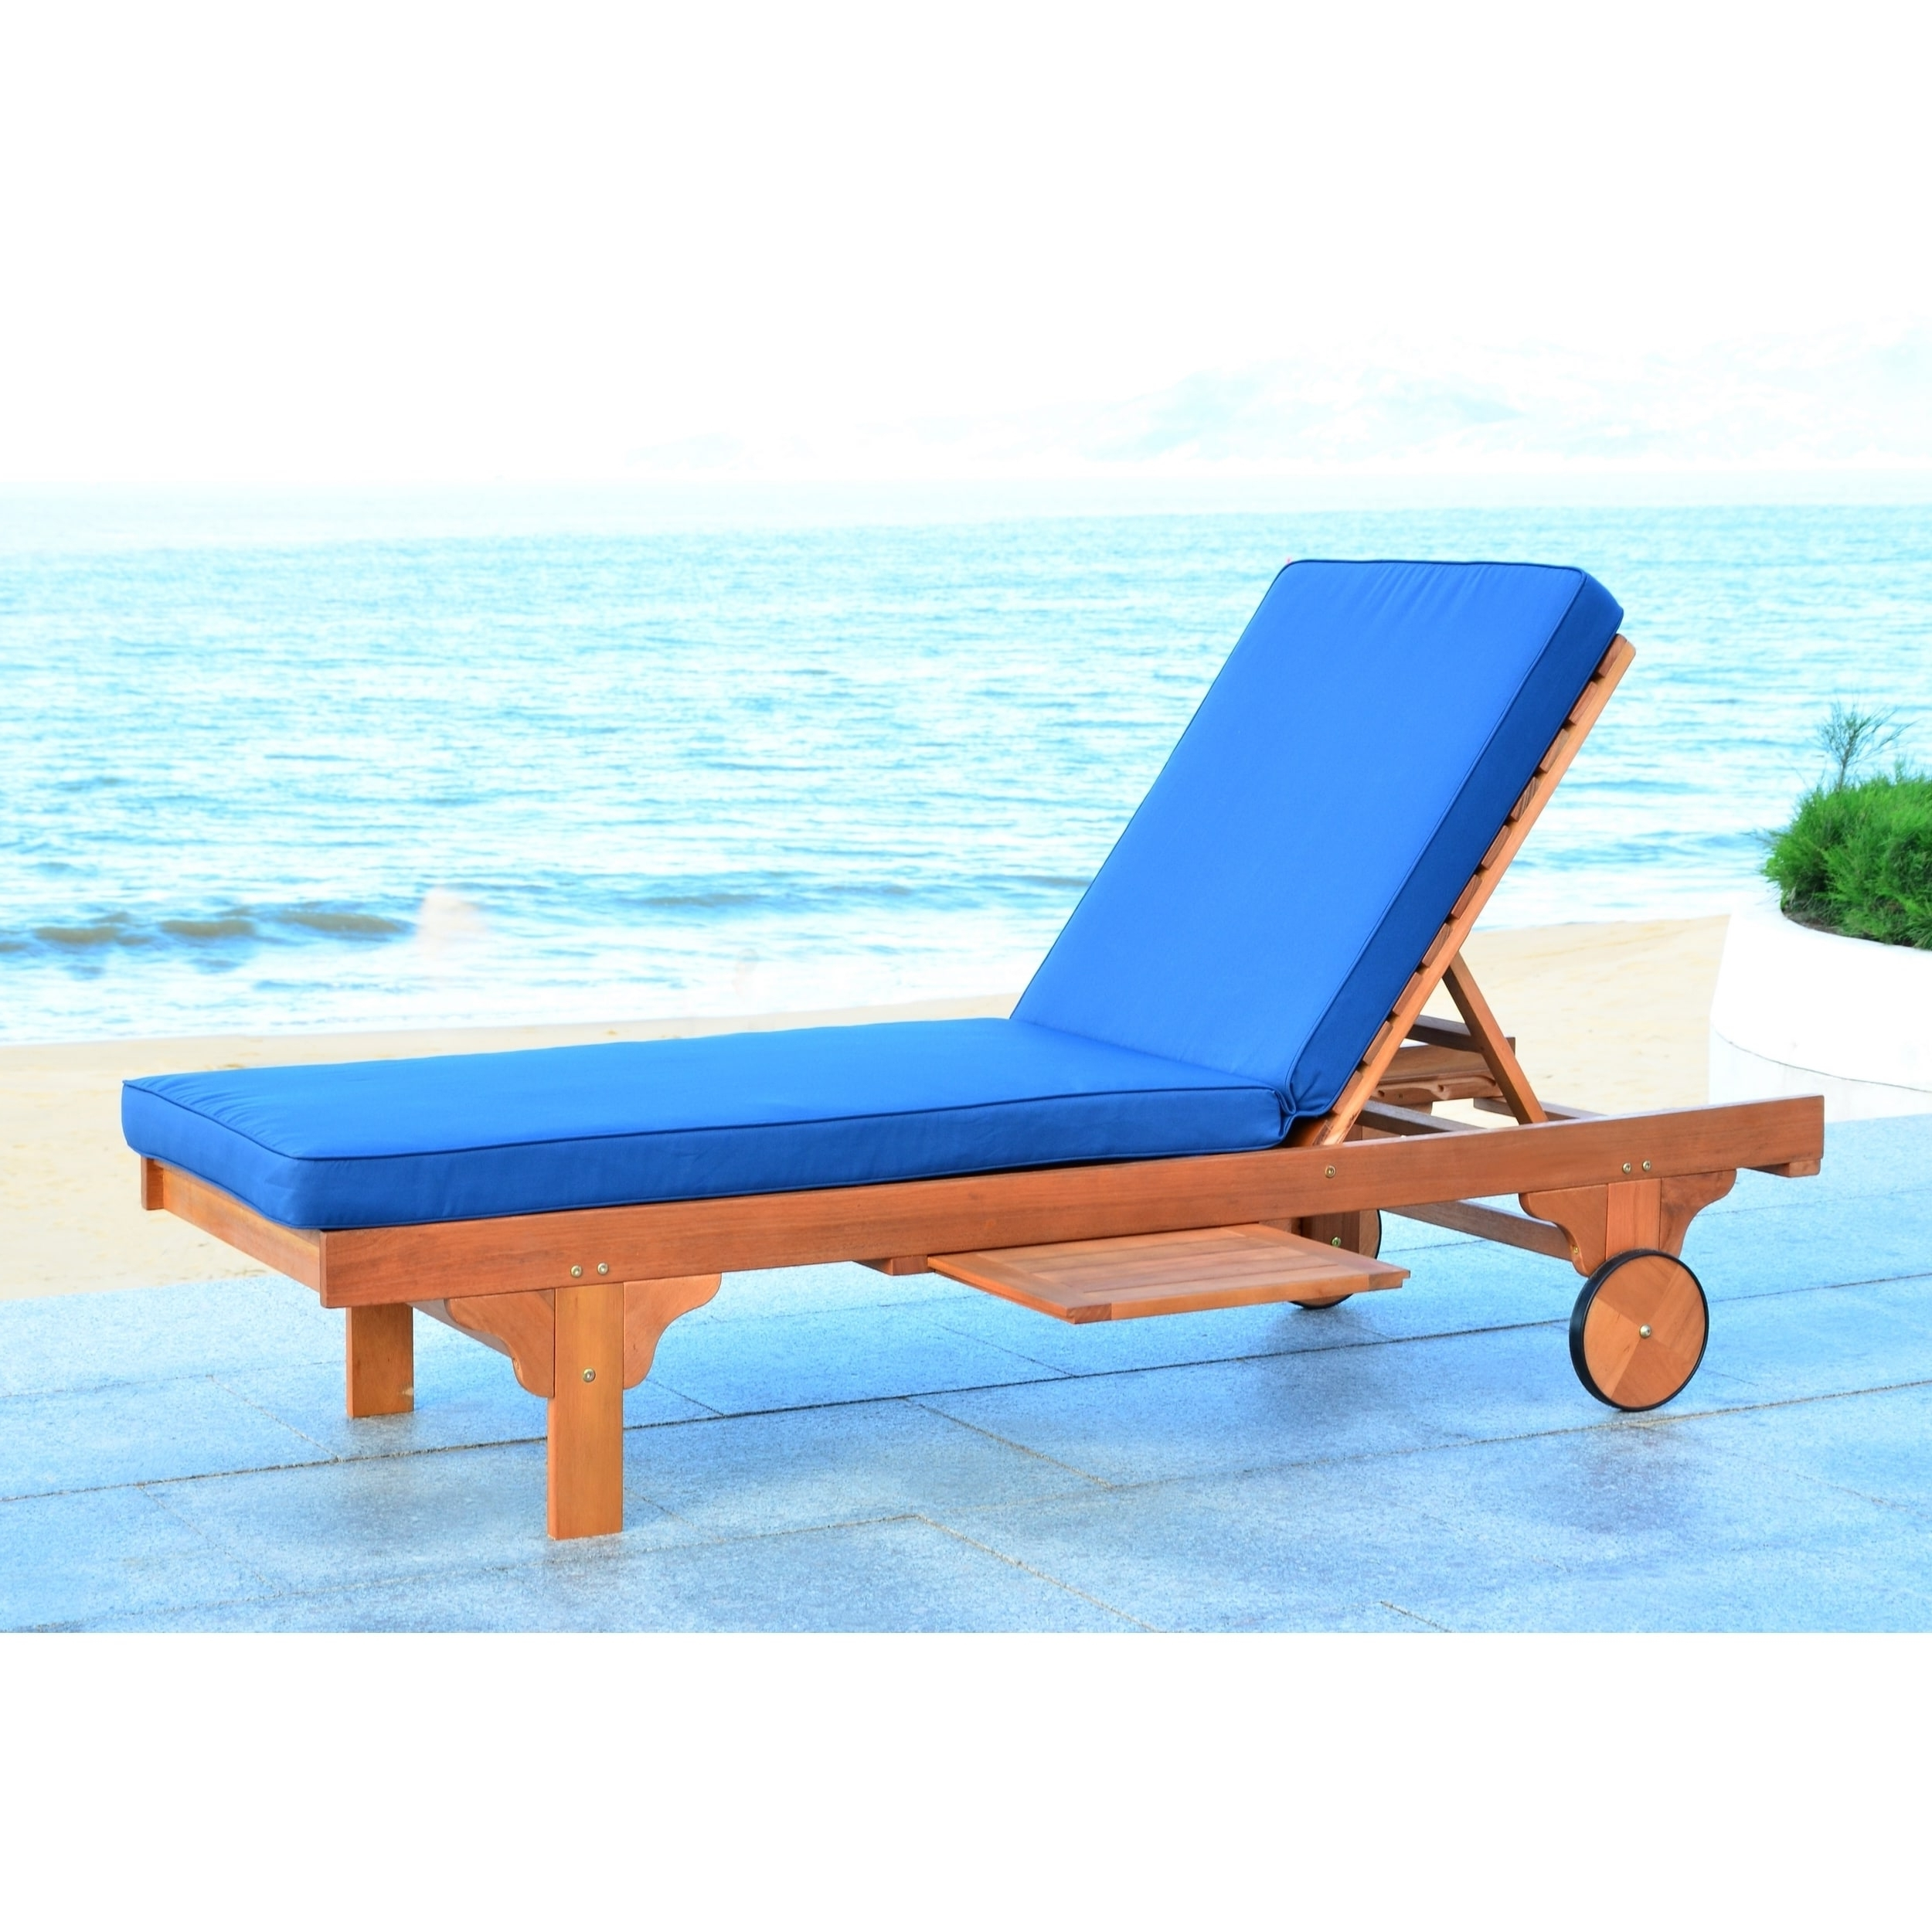 Widely Used Safavieh Outdoor Living Newport Brown/ Navy Adjustable Chaise With Regard To Newport Chaise Lounge Chairs (View 15 of 15)